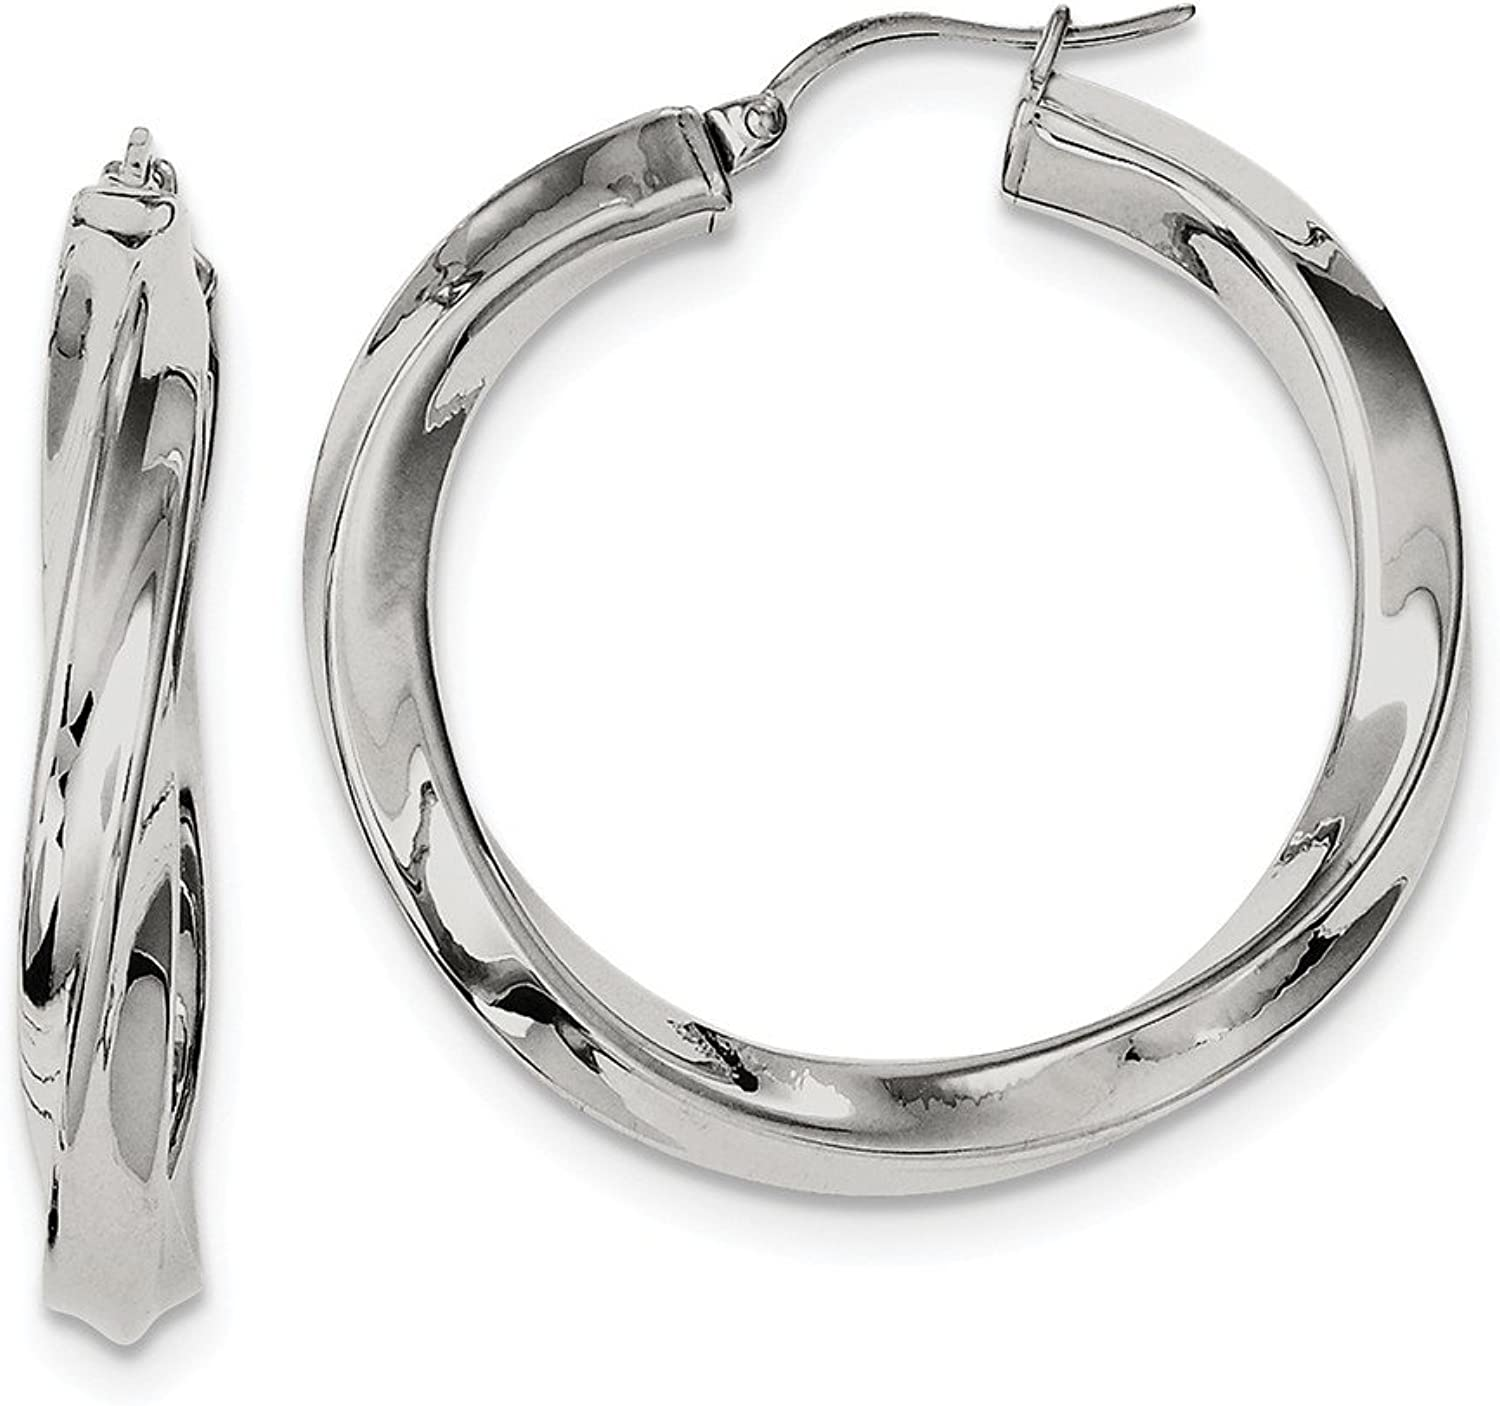 Beautiful Stainless Steel Twisted Polished Hollow Hoop Earrings